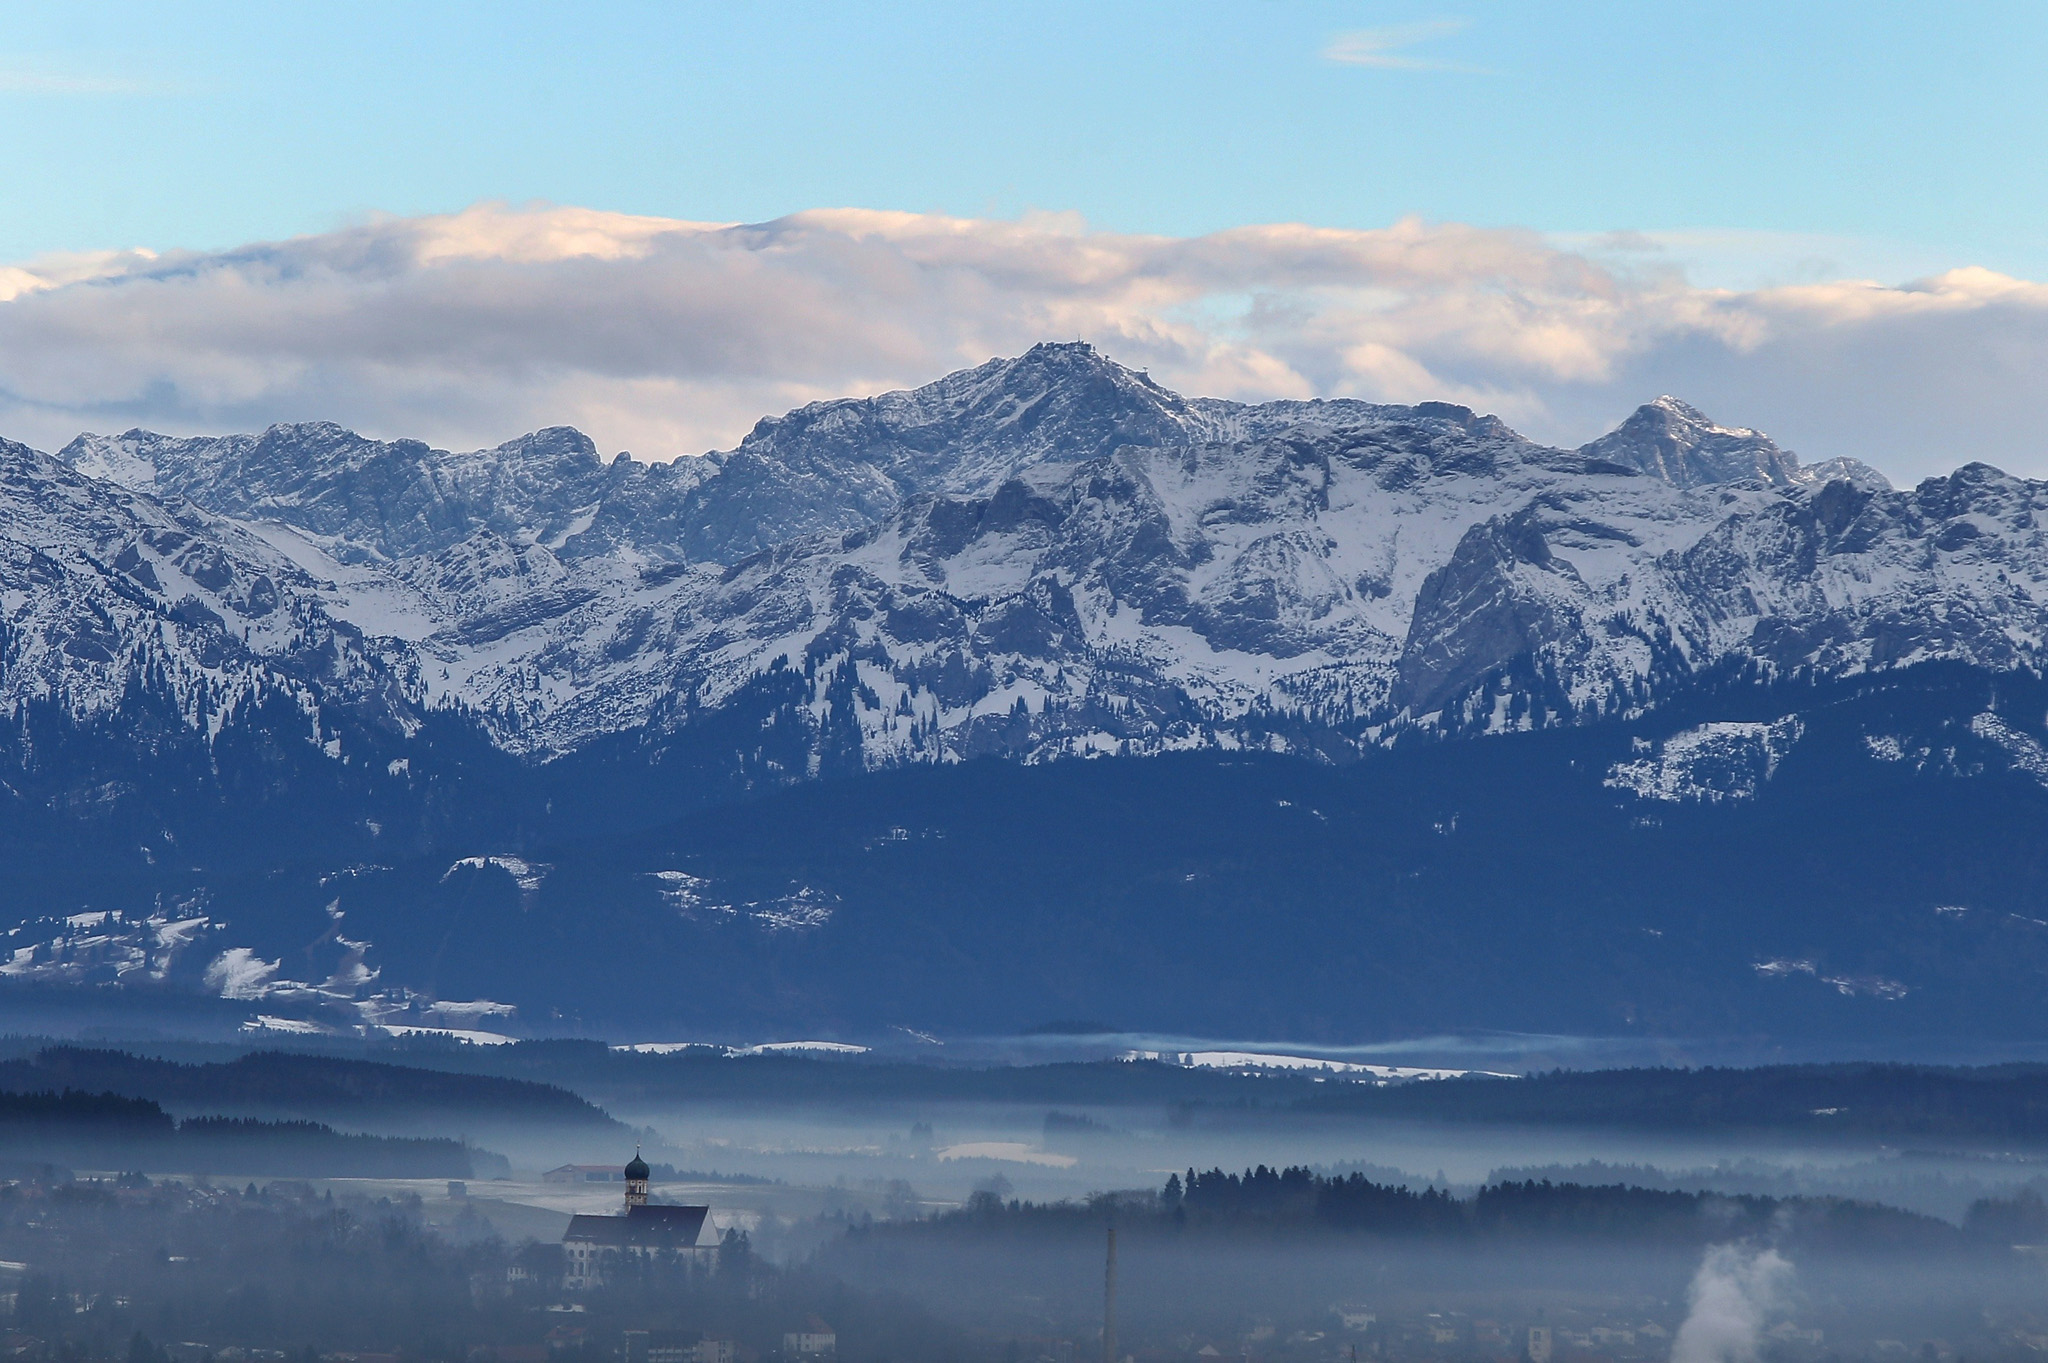 Fog rises from the valley and the church...Fog rises from the valley and the church of Marktoberdorf, southern Germany, as in background can be seen an Alps panorama on January 19, 2014.       AFP PHOTO / DPA / KARL-JOSEF HILDENBRAND / GERMANY OUTKARL-JOSEF HILDENBRAND/AFP/Getty Images